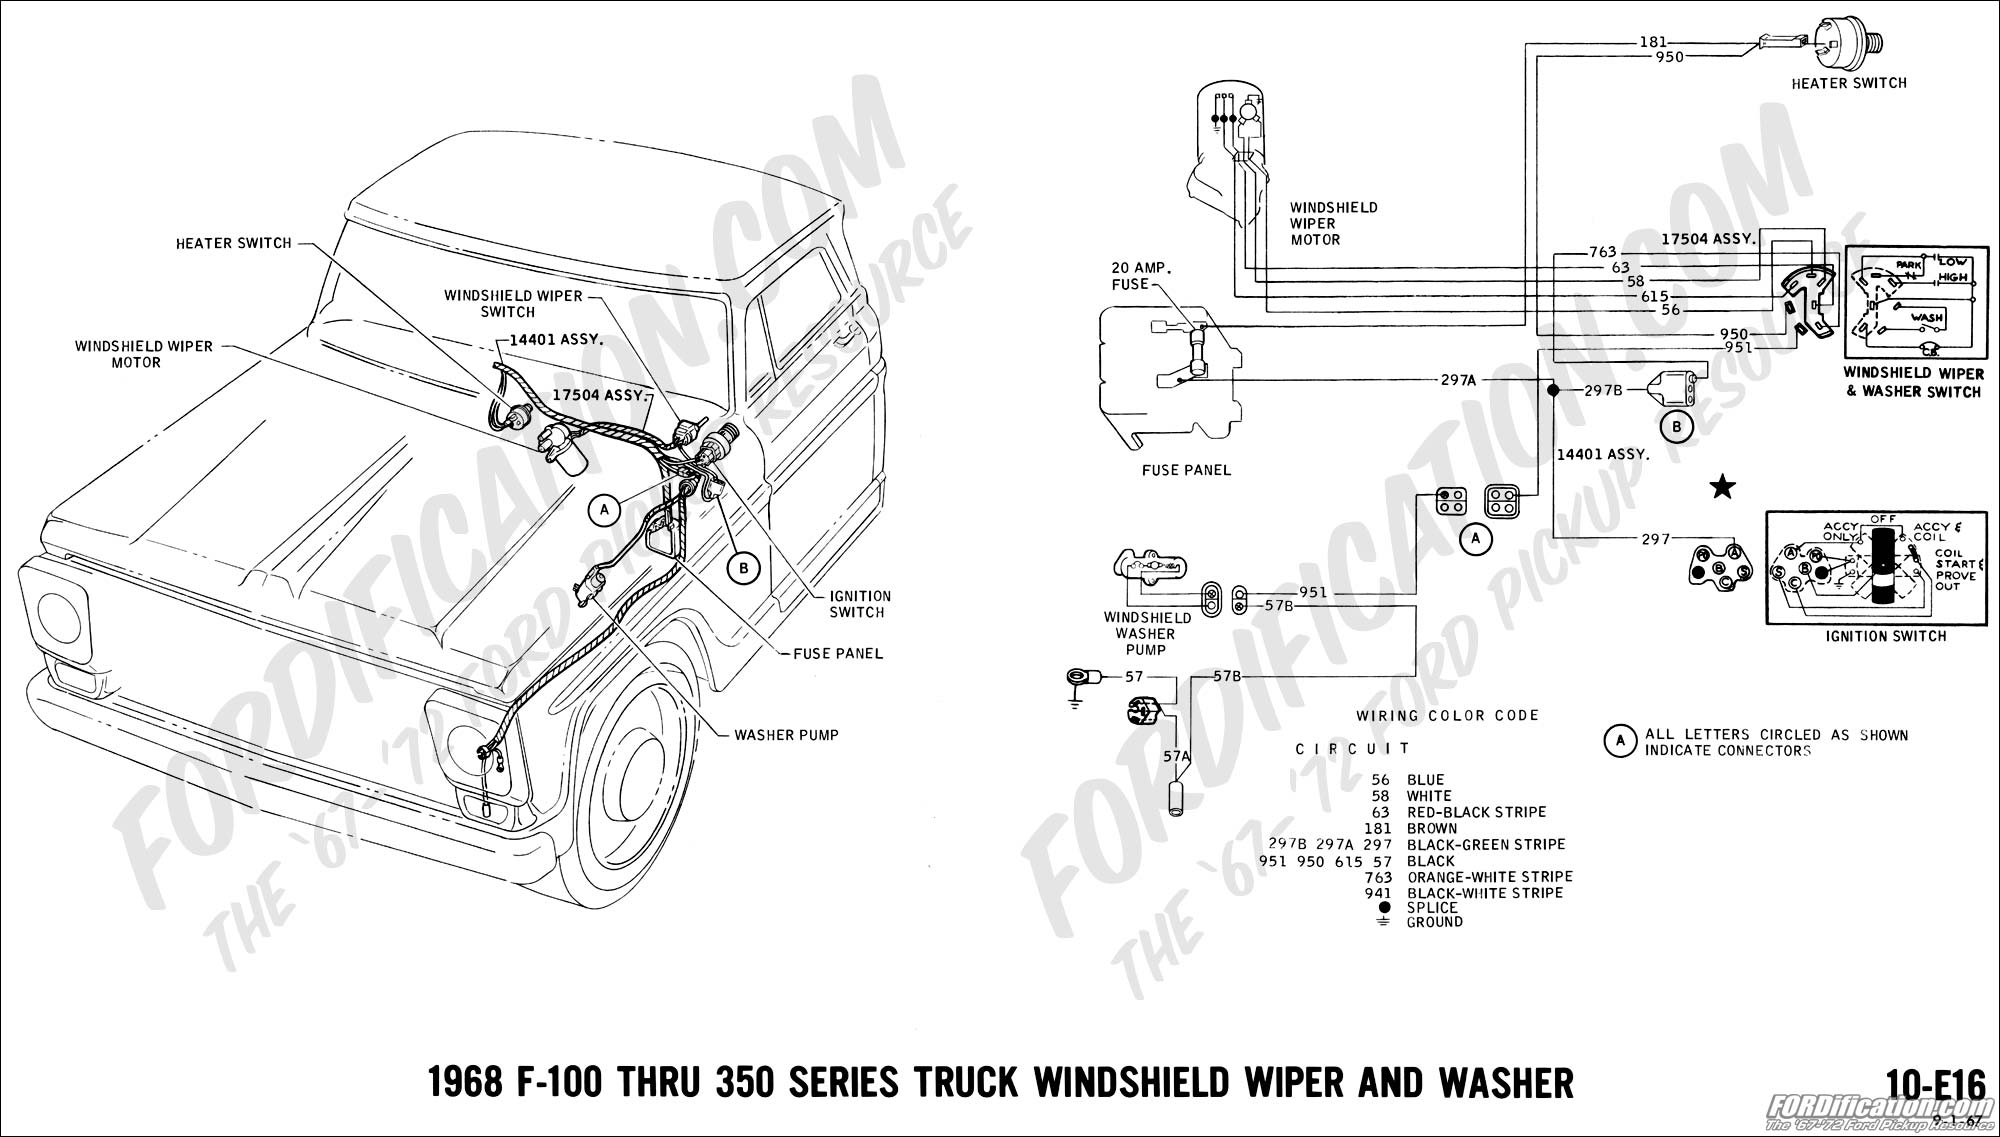 1987 Ford Bronco Wiring Diagram from www.fordification.com